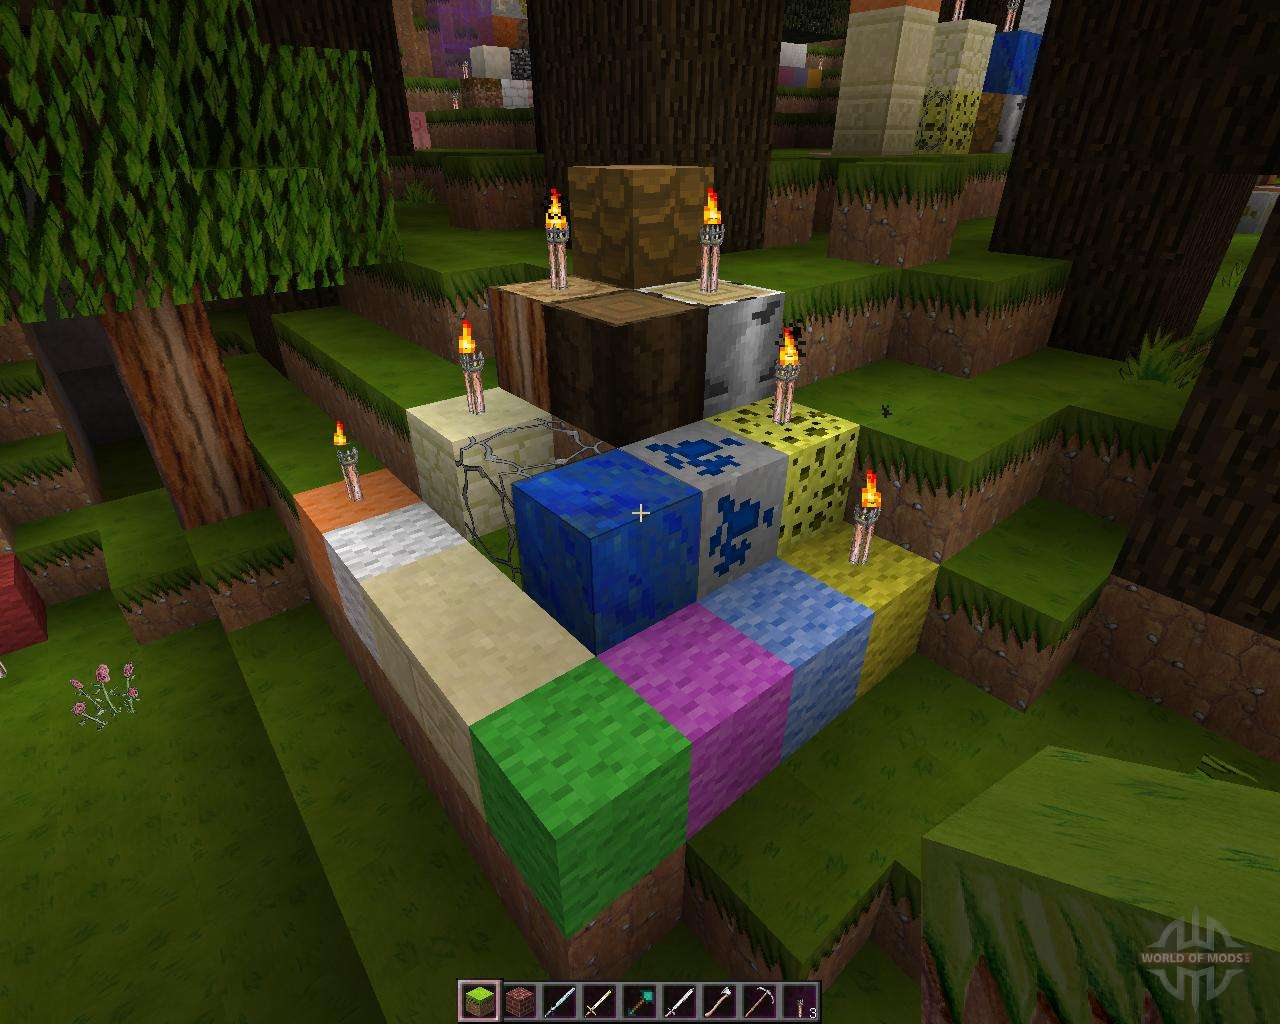 Sketch Hand Drawn HD Resource Pack [128x][1 8 8] for Minecraft